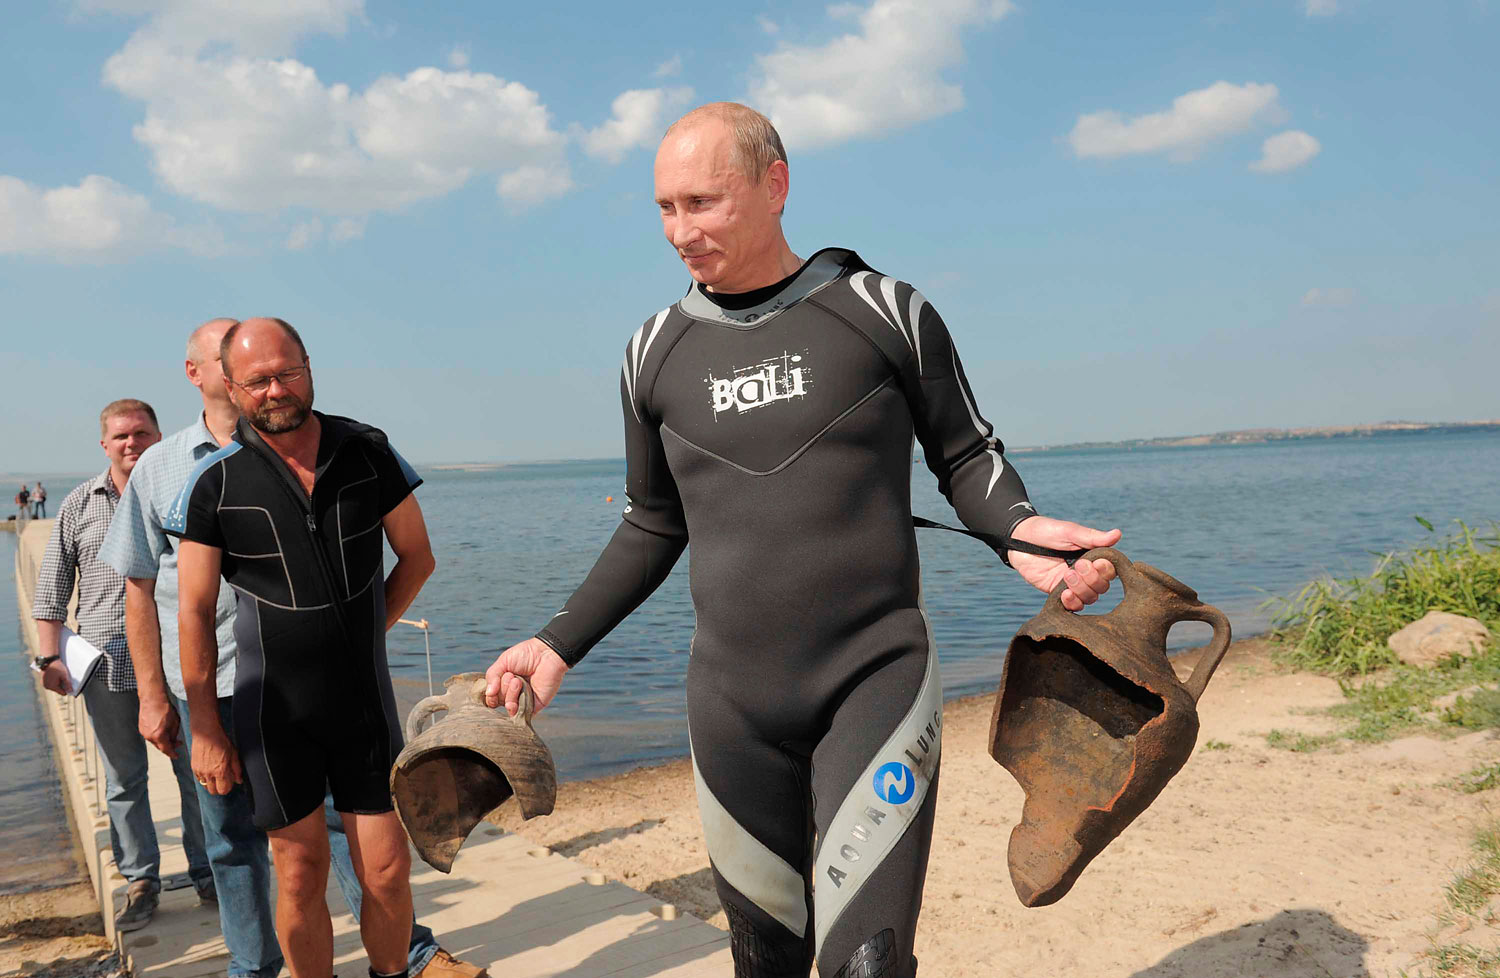 Putin carries artifacts he recovered whilst diving at an archaeological site off the Taman peninsular in southern Russia, Aug. 10, 2011.